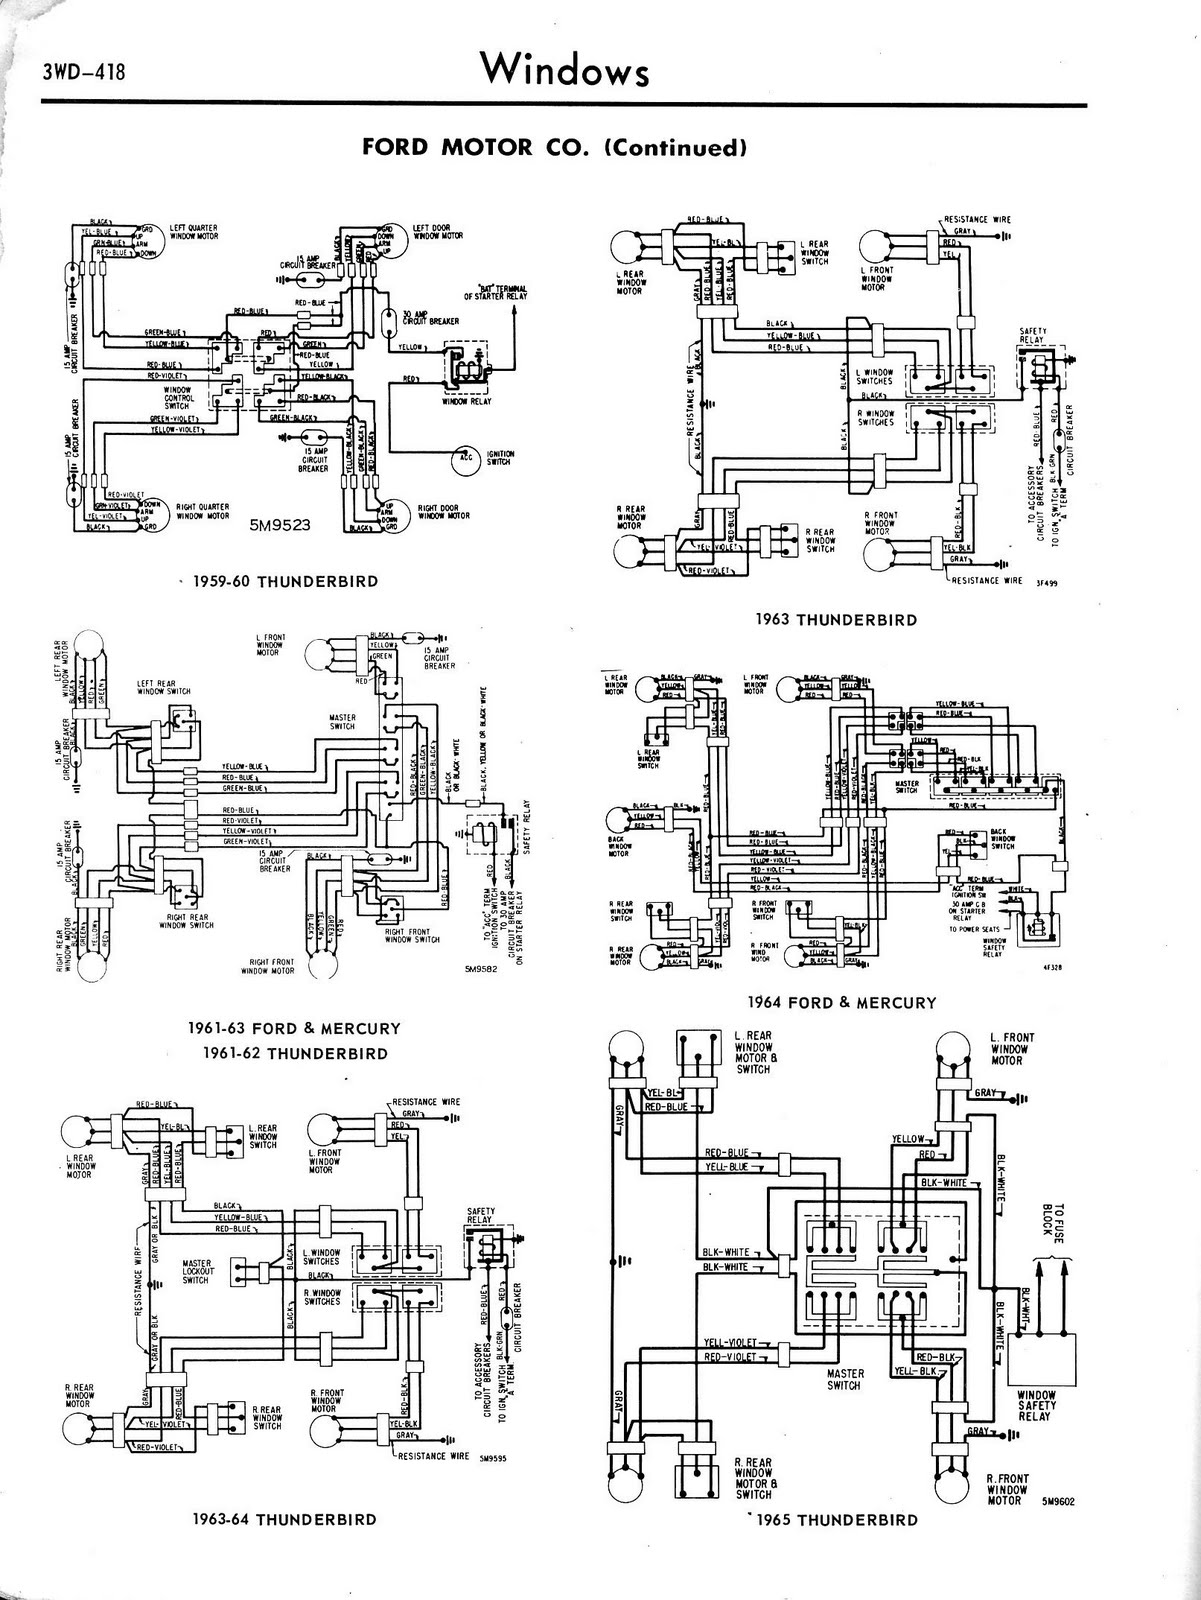 1965+Ford+Thunderbird+Window+Controls+Diagram wiring diagram for 1972 ford f100 the wiring diagram 1965 ford f100 wiring harness at bayanpartner.co